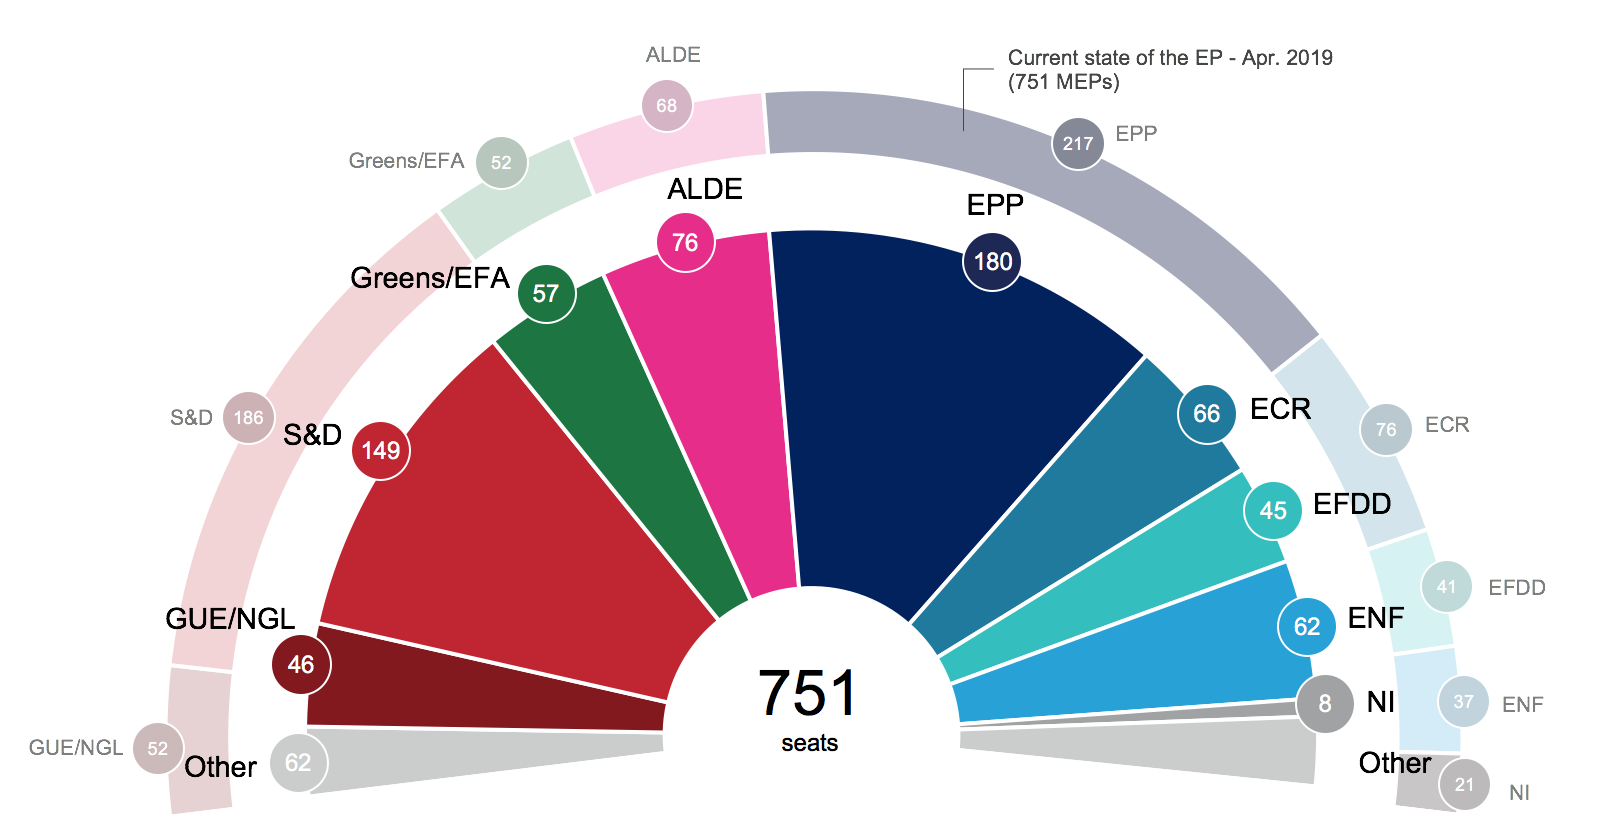 New seat projections for the next European Parliament EU28